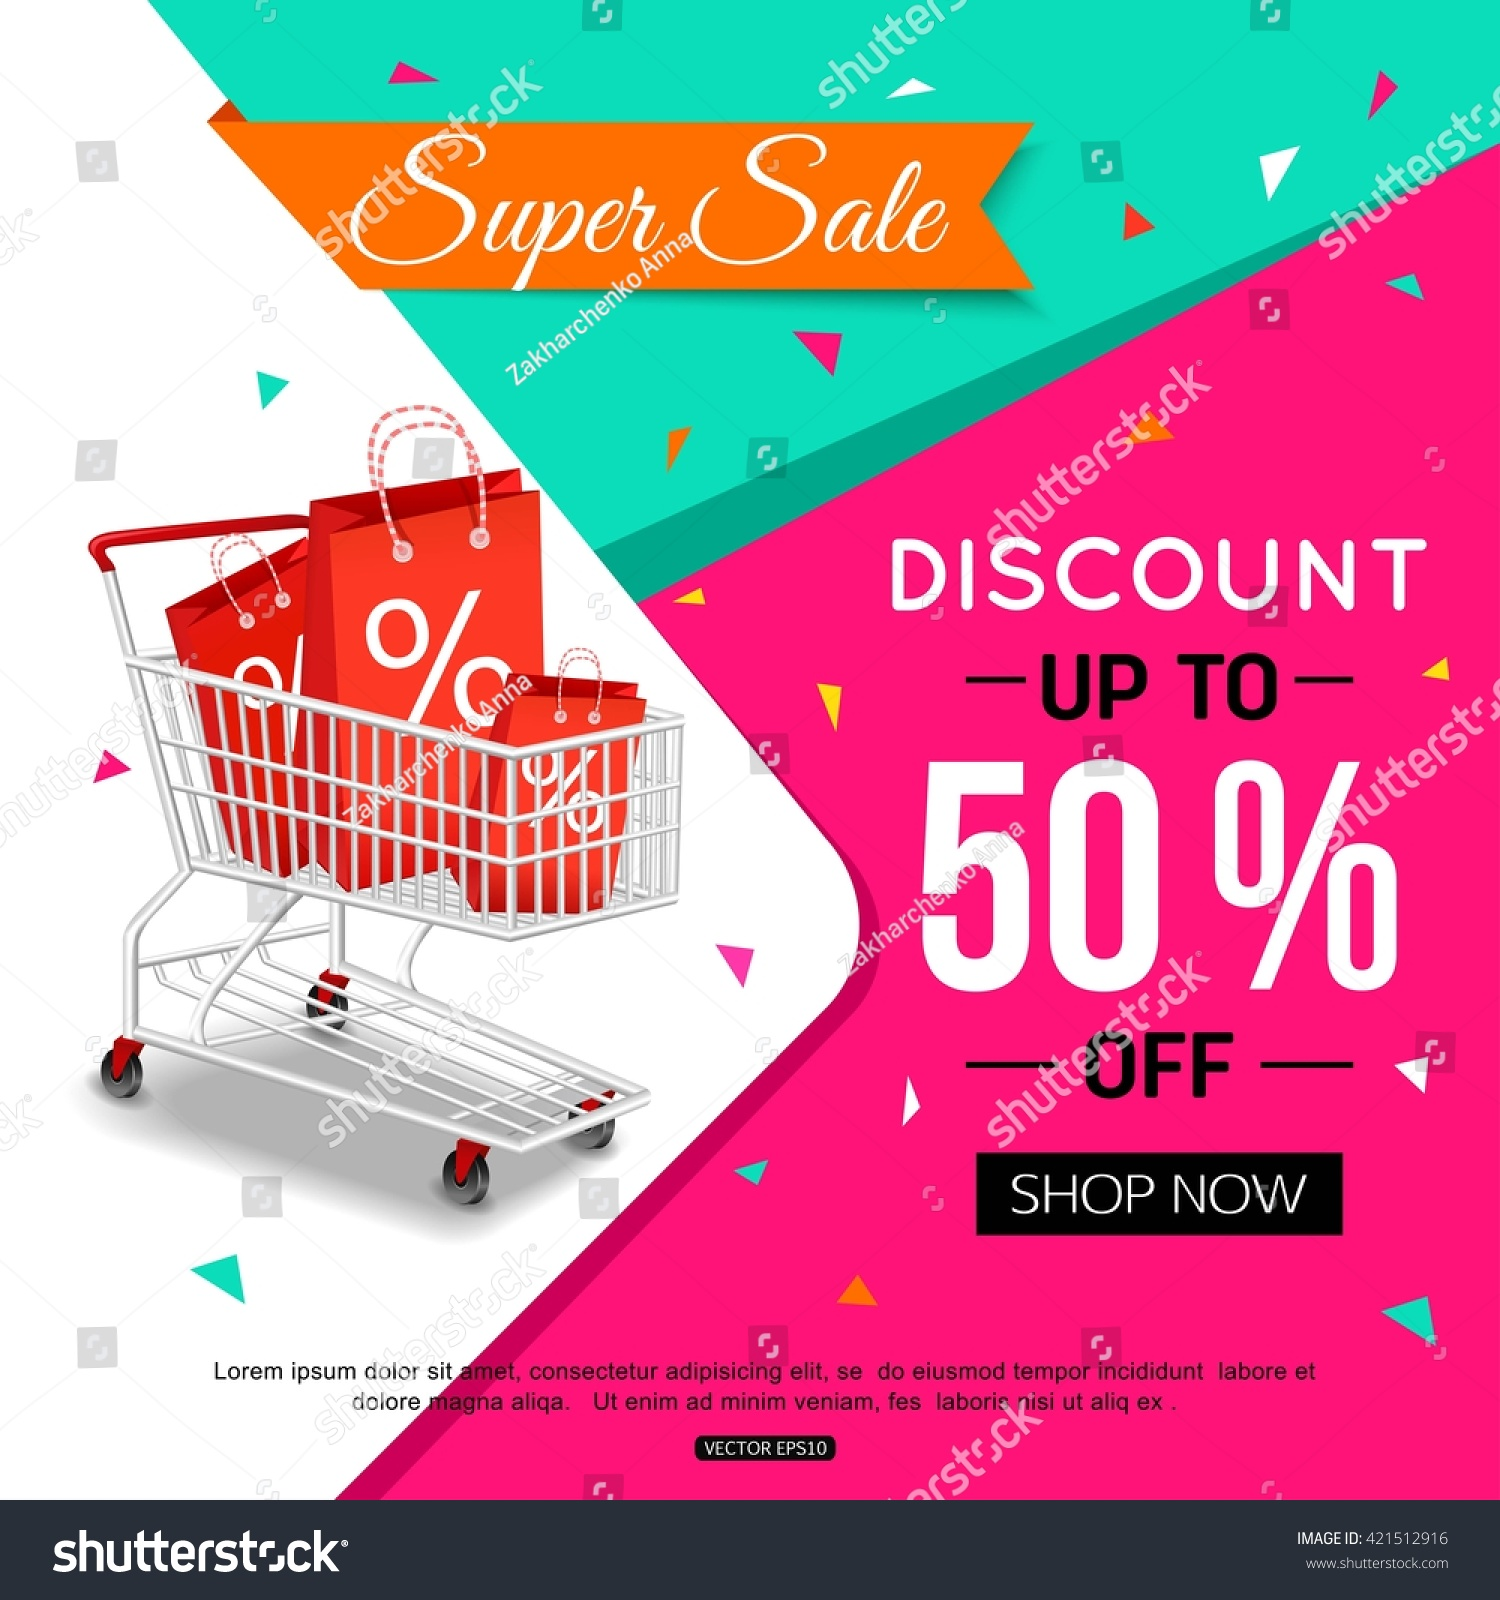 Super sale banner design shop online stock vector for Design online shop